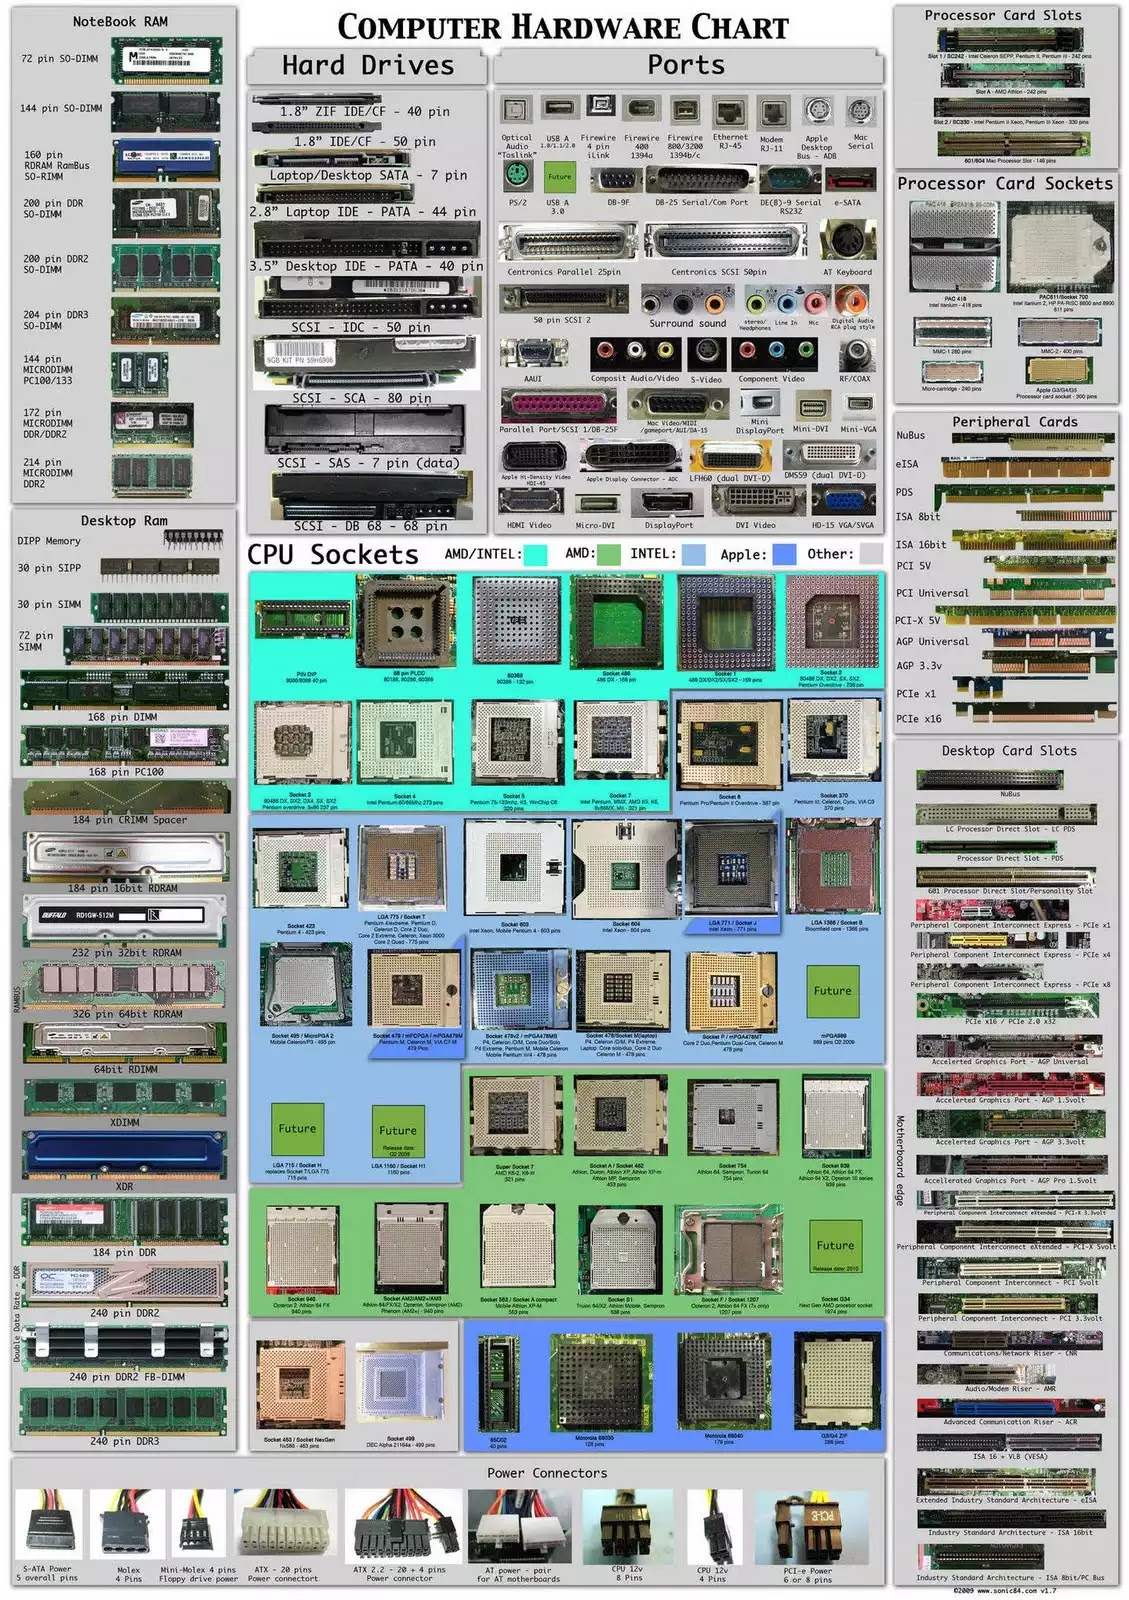 Visual Reference for Computer Hardware, Sockets and connectors. Consists of Notebook RAMs, Desktop RAMs, Hard-drives, Ports, Processor Card Slots, Processor Card Sockets, CPU Sockets, Peripheral Cards, Desktop Card Slots and Power Conncetors.